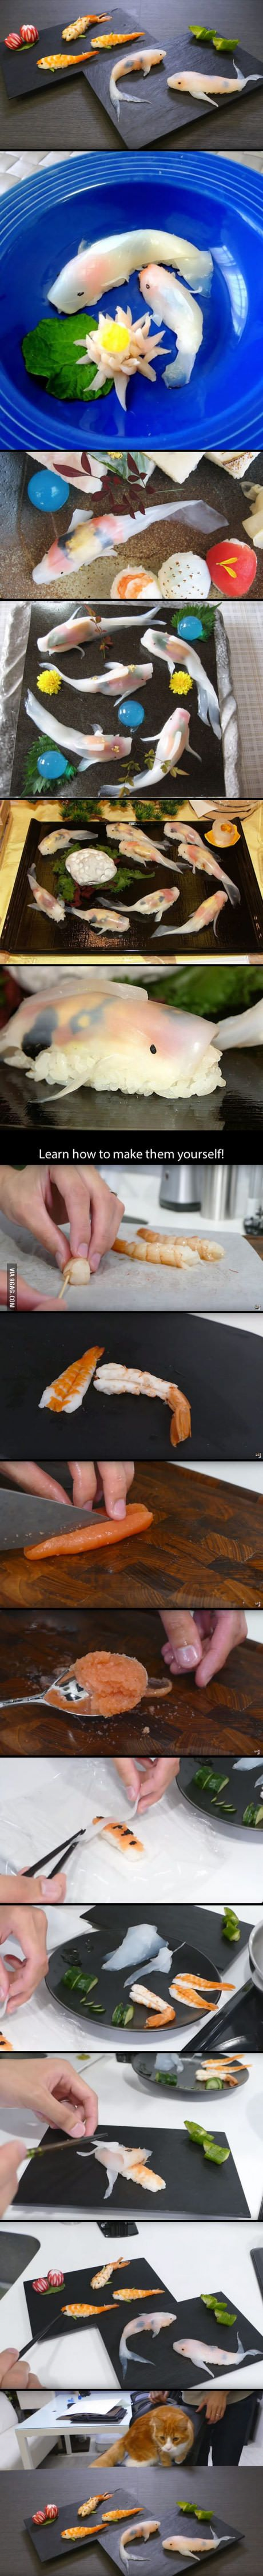 This Guy Makes Sushi That Looks Like Real-Life Koi In A Few Simple Steps http://tracking.publicidees.com/clic.php?progid=2185&partid=48172&dpl=http%3A%2F%2Fwww.partirpascher.com%2Fvoyage%2Fvacances%2Fsejour-japon-pas-cher%2C%2C127%2C%2F